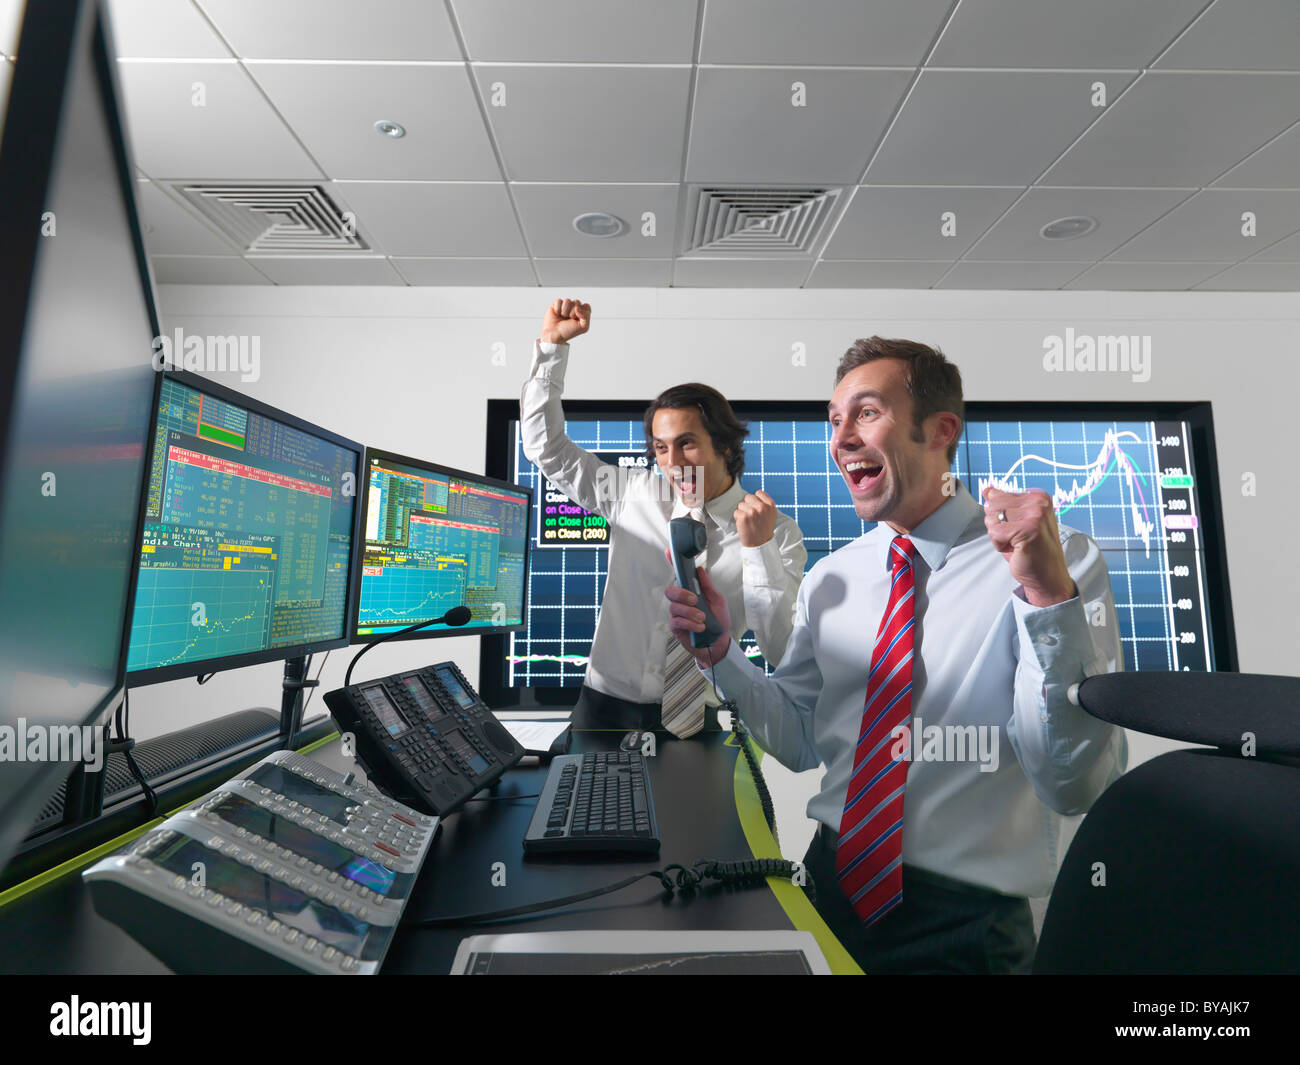 Successful financial trader and screens - Stock Image